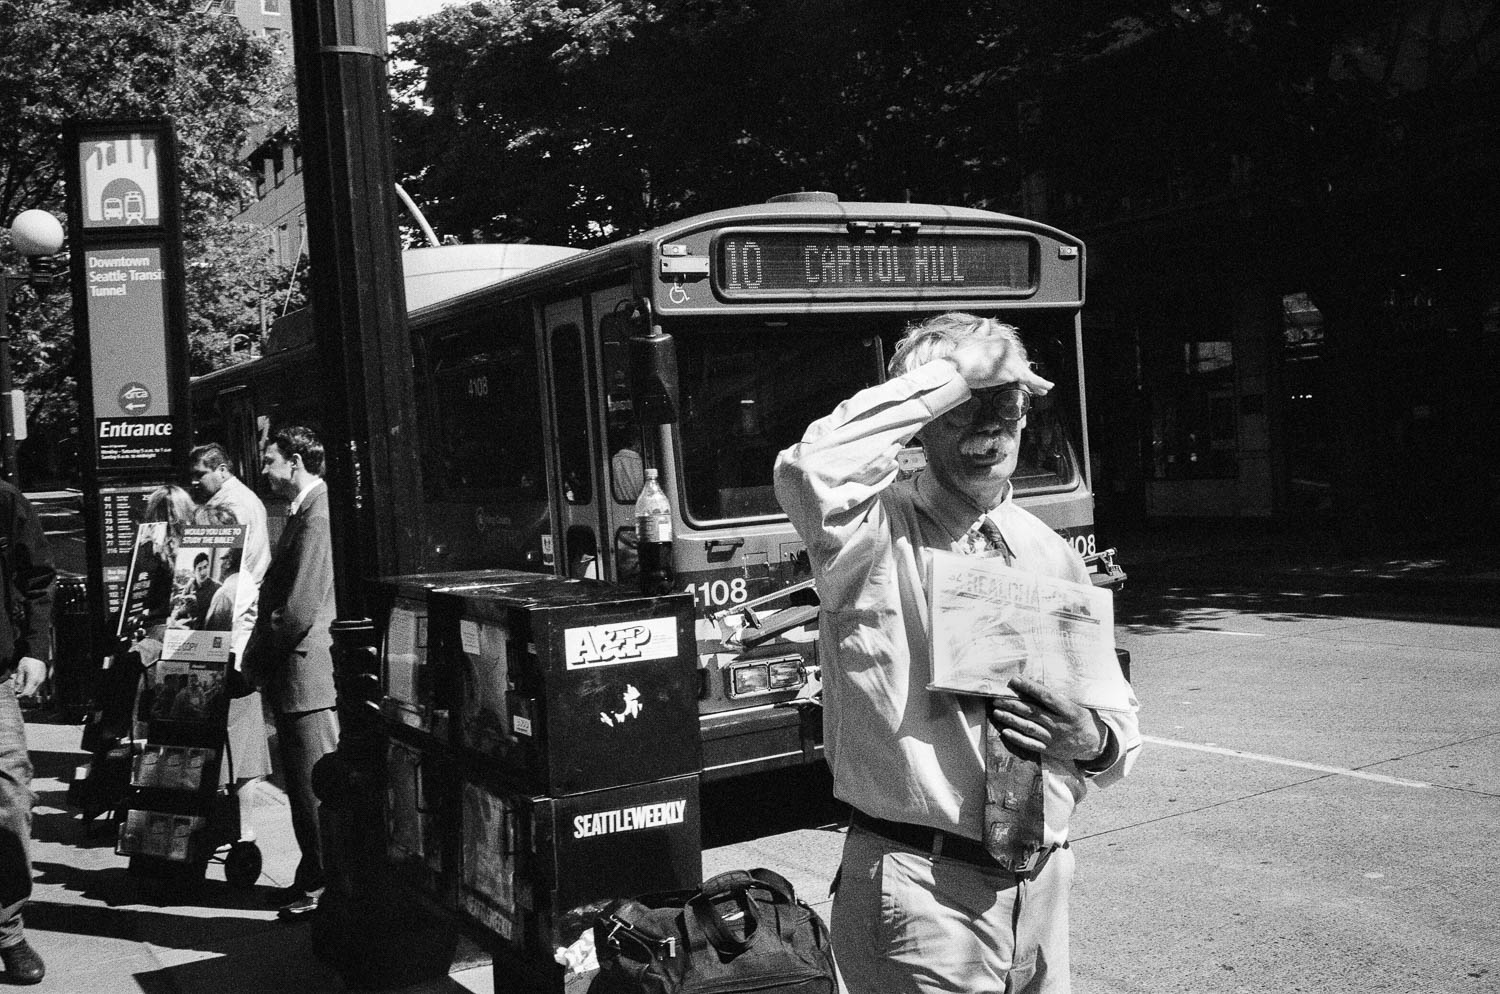 A Seattle man shielding his eyes from the sun while holding a newspaper in front of a city bus